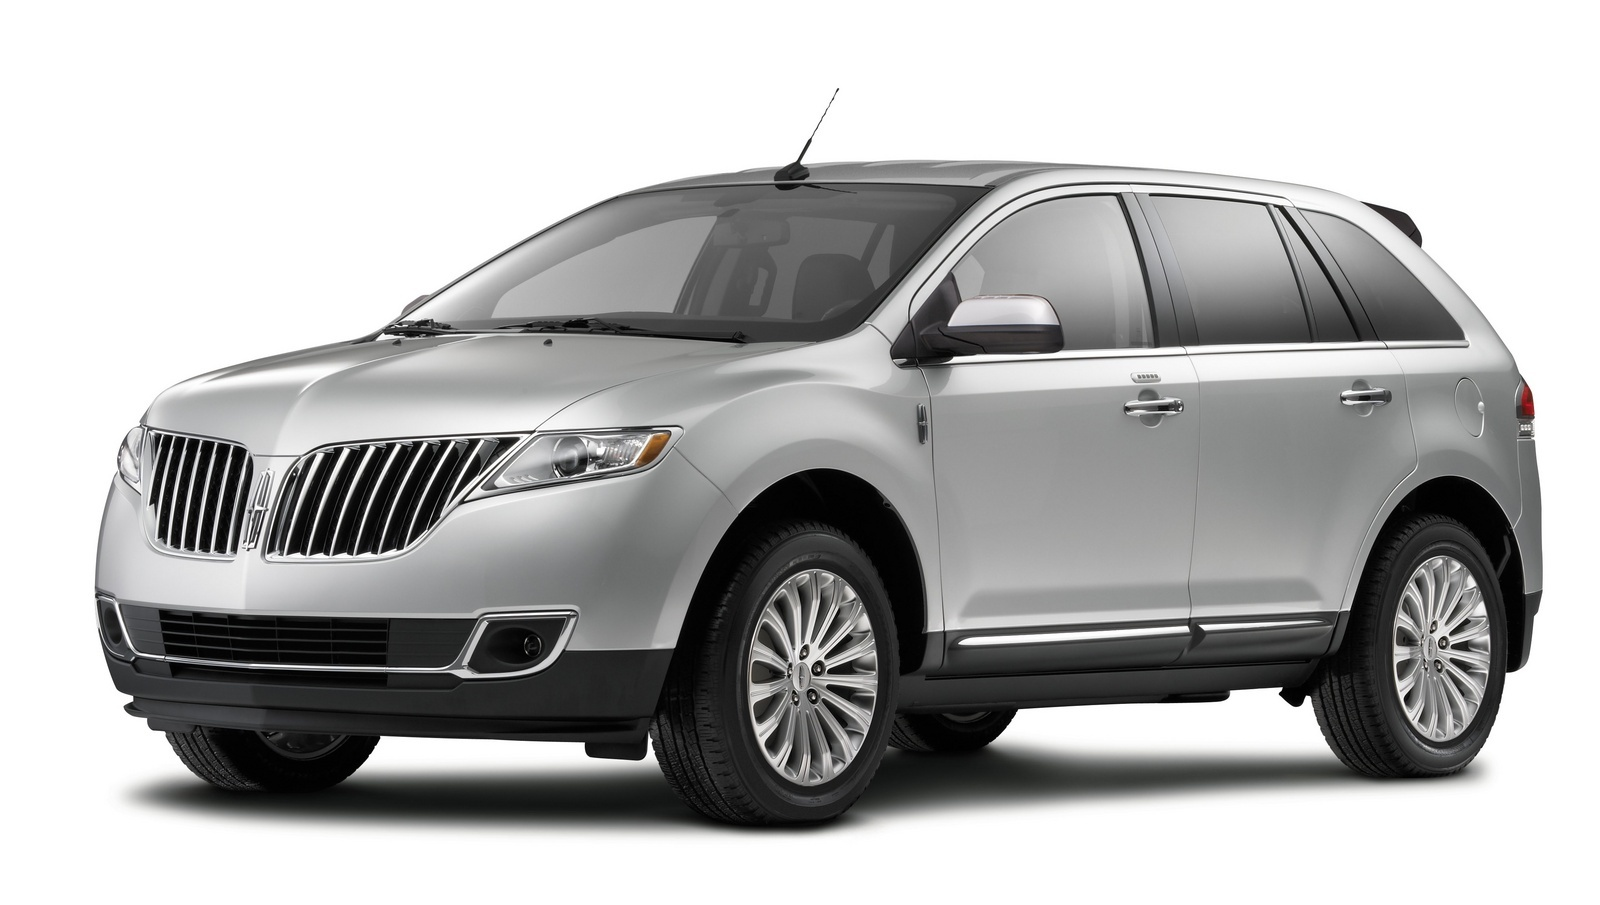 2015 lincoln mkx consumer reviews